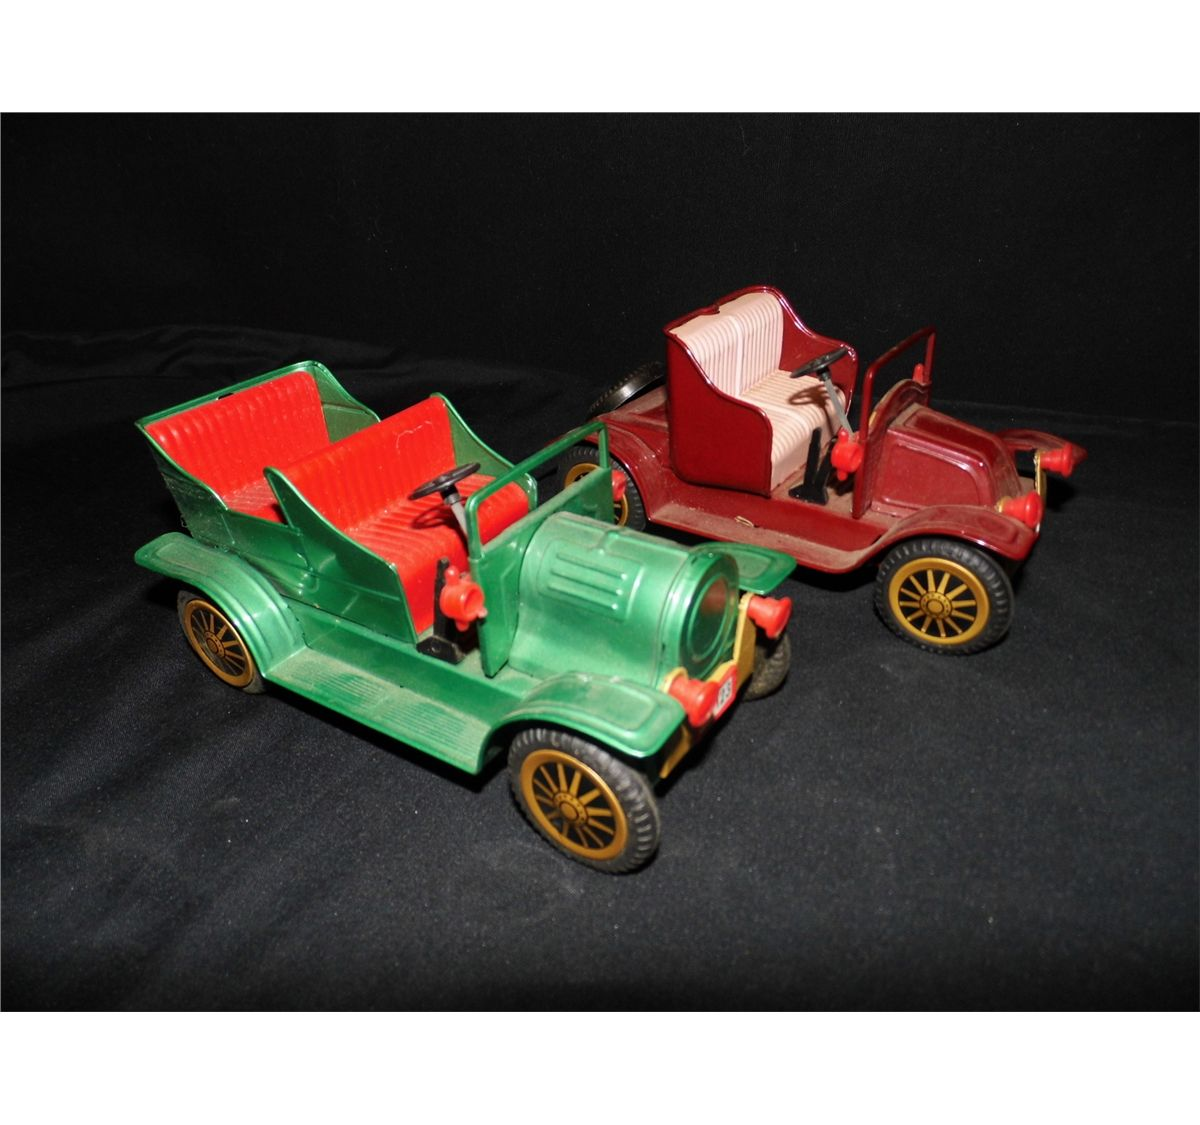 2 touring cars tin friction cars made in japan one missing wheel in long x 3 in tall. Black Bedroom Furniture Sets. Home Design Ideas